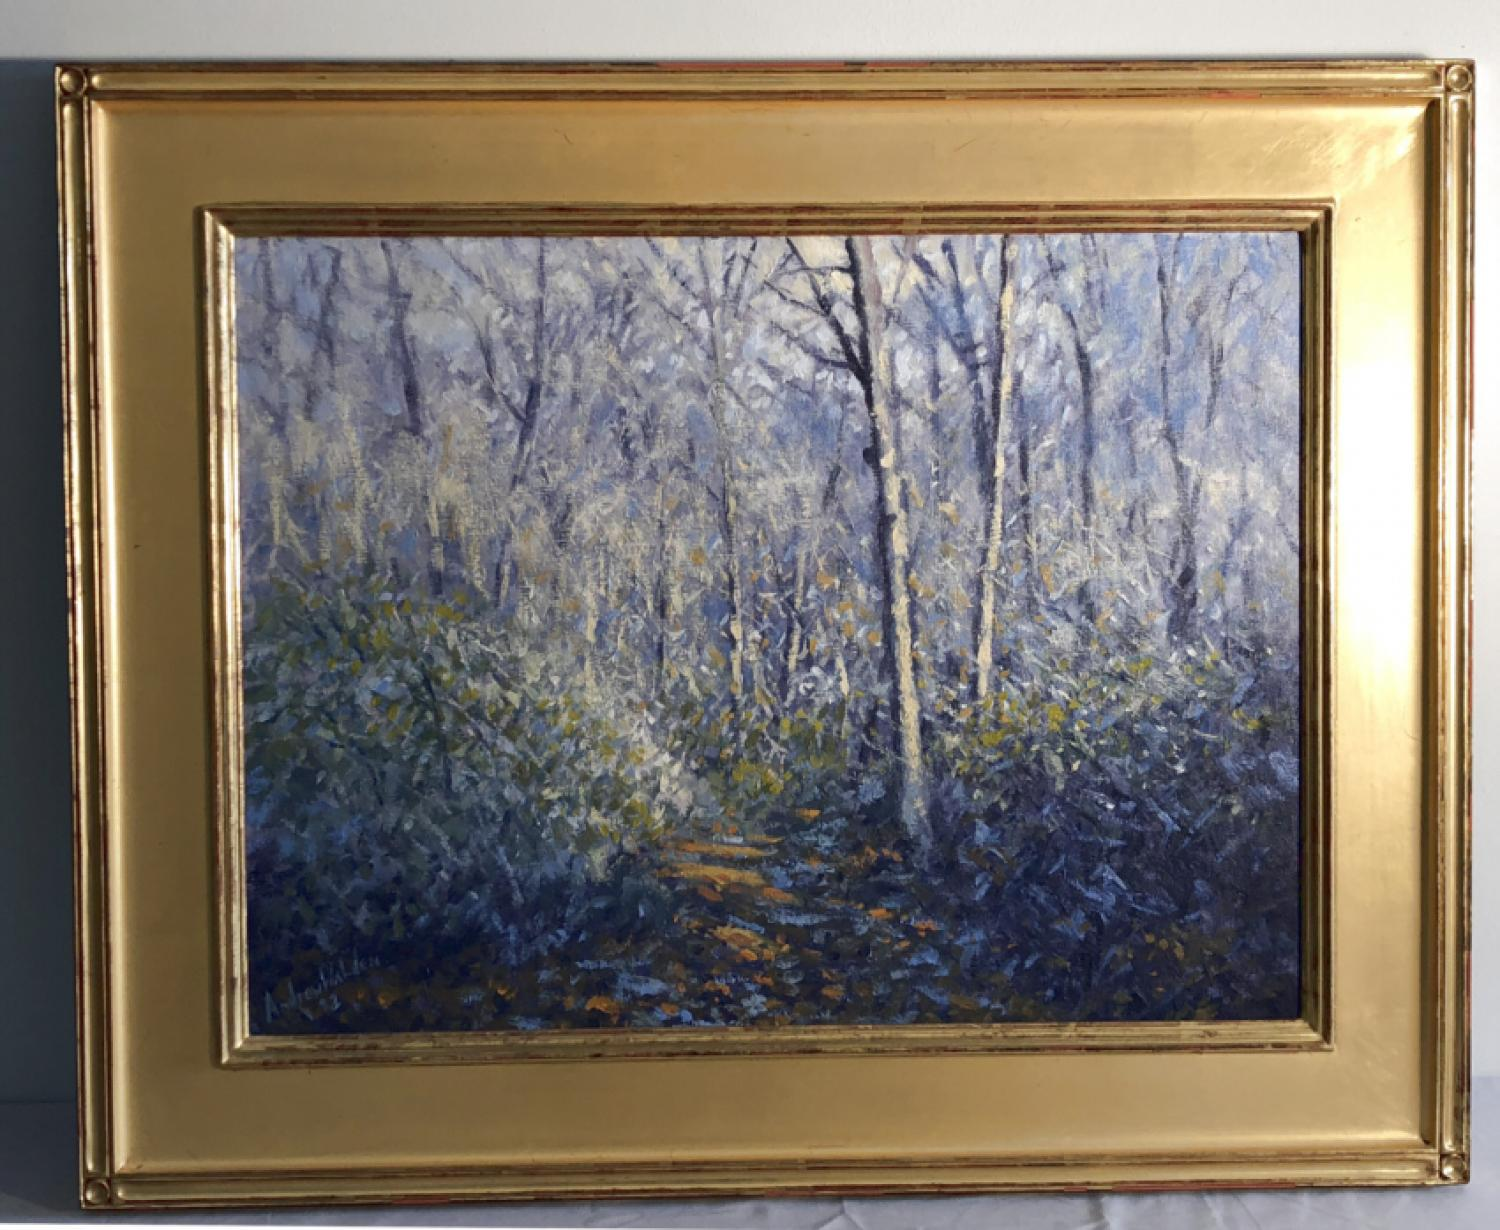 Andrew Walden wooded landscape oil painting